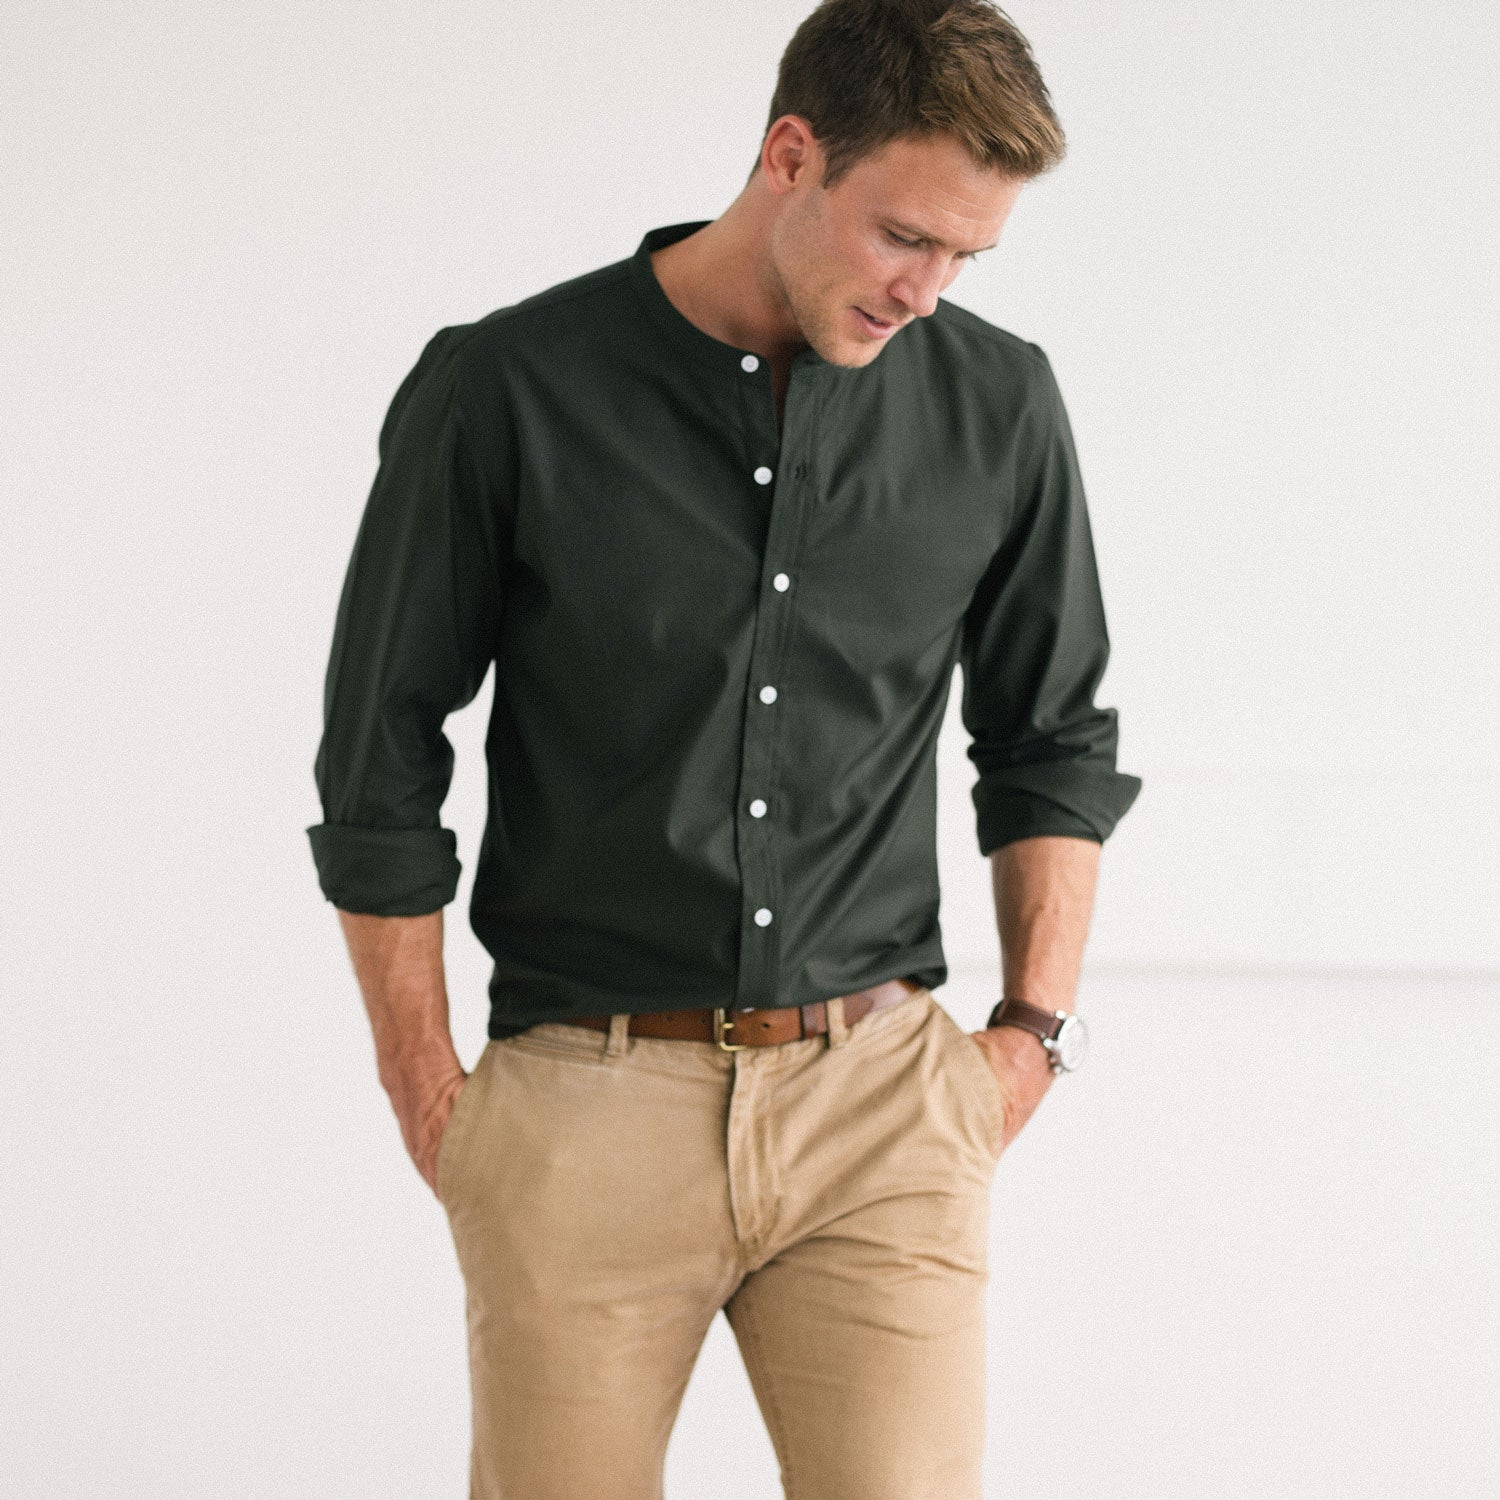 Band Collar Shirt Green With White Buttons